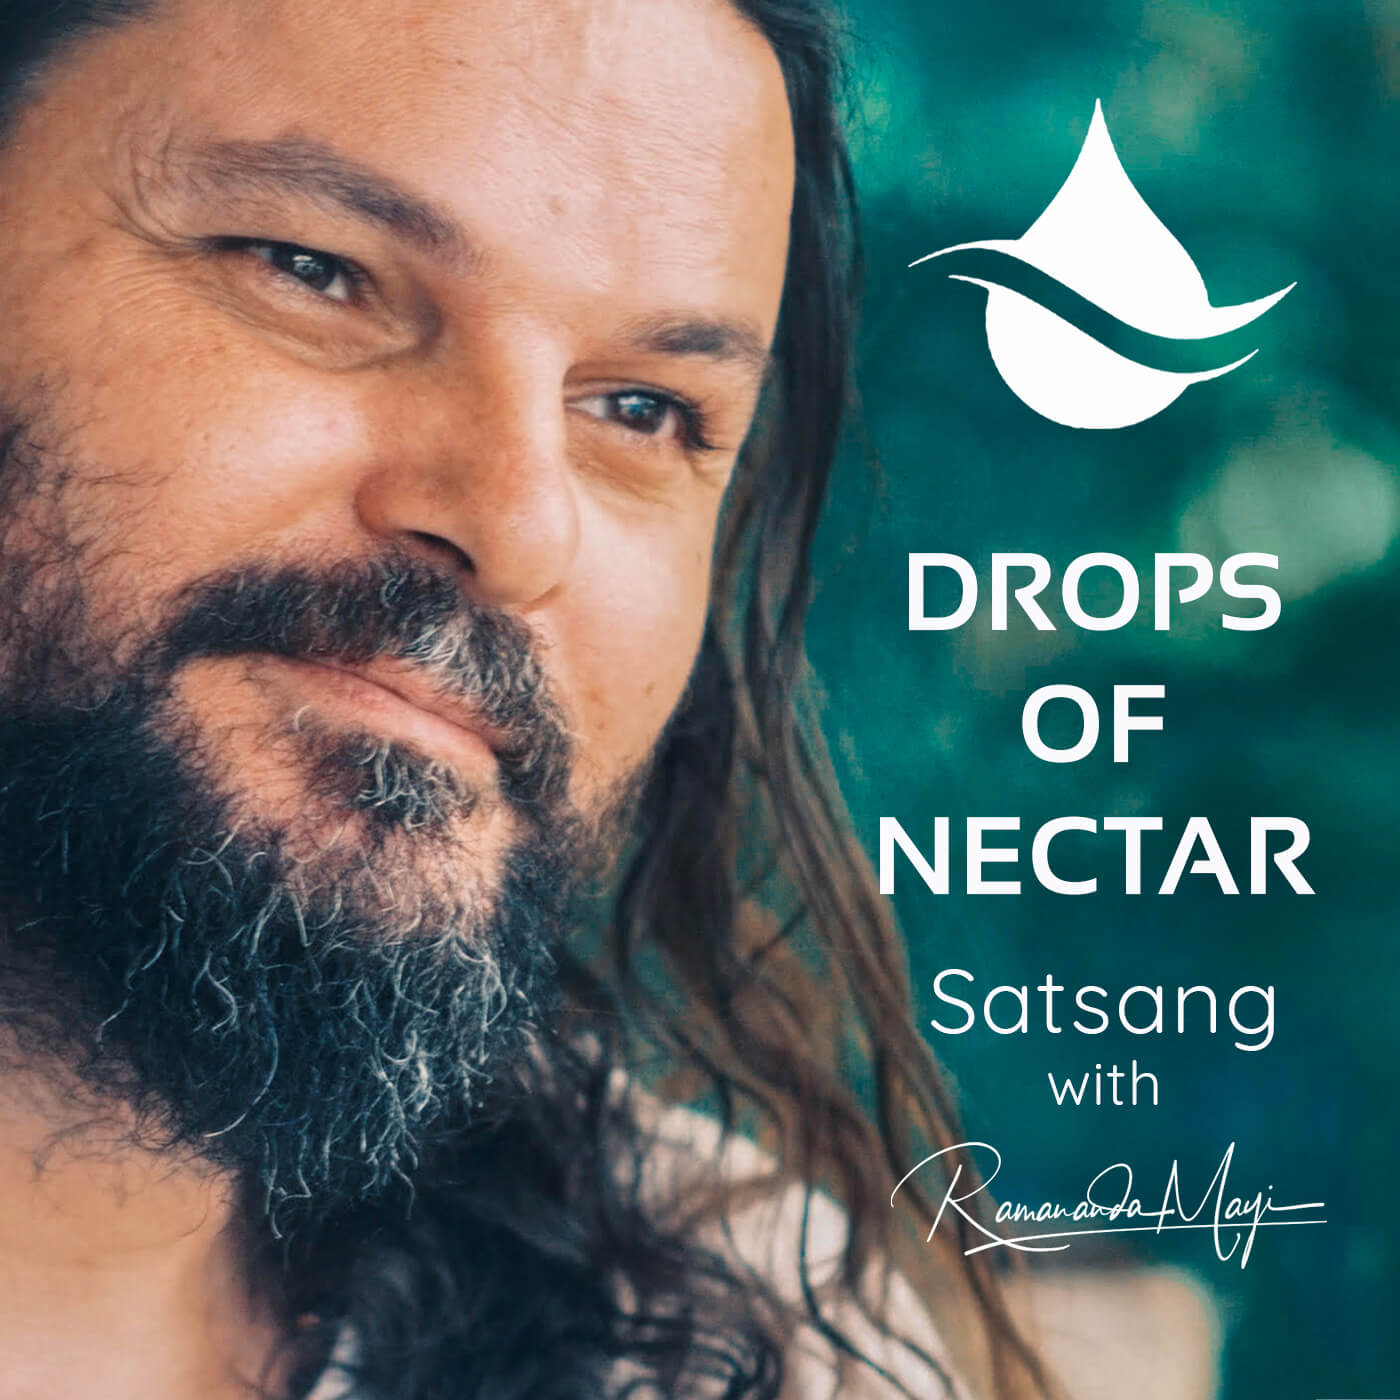 Drops of Nectar with Ramananda Mayi